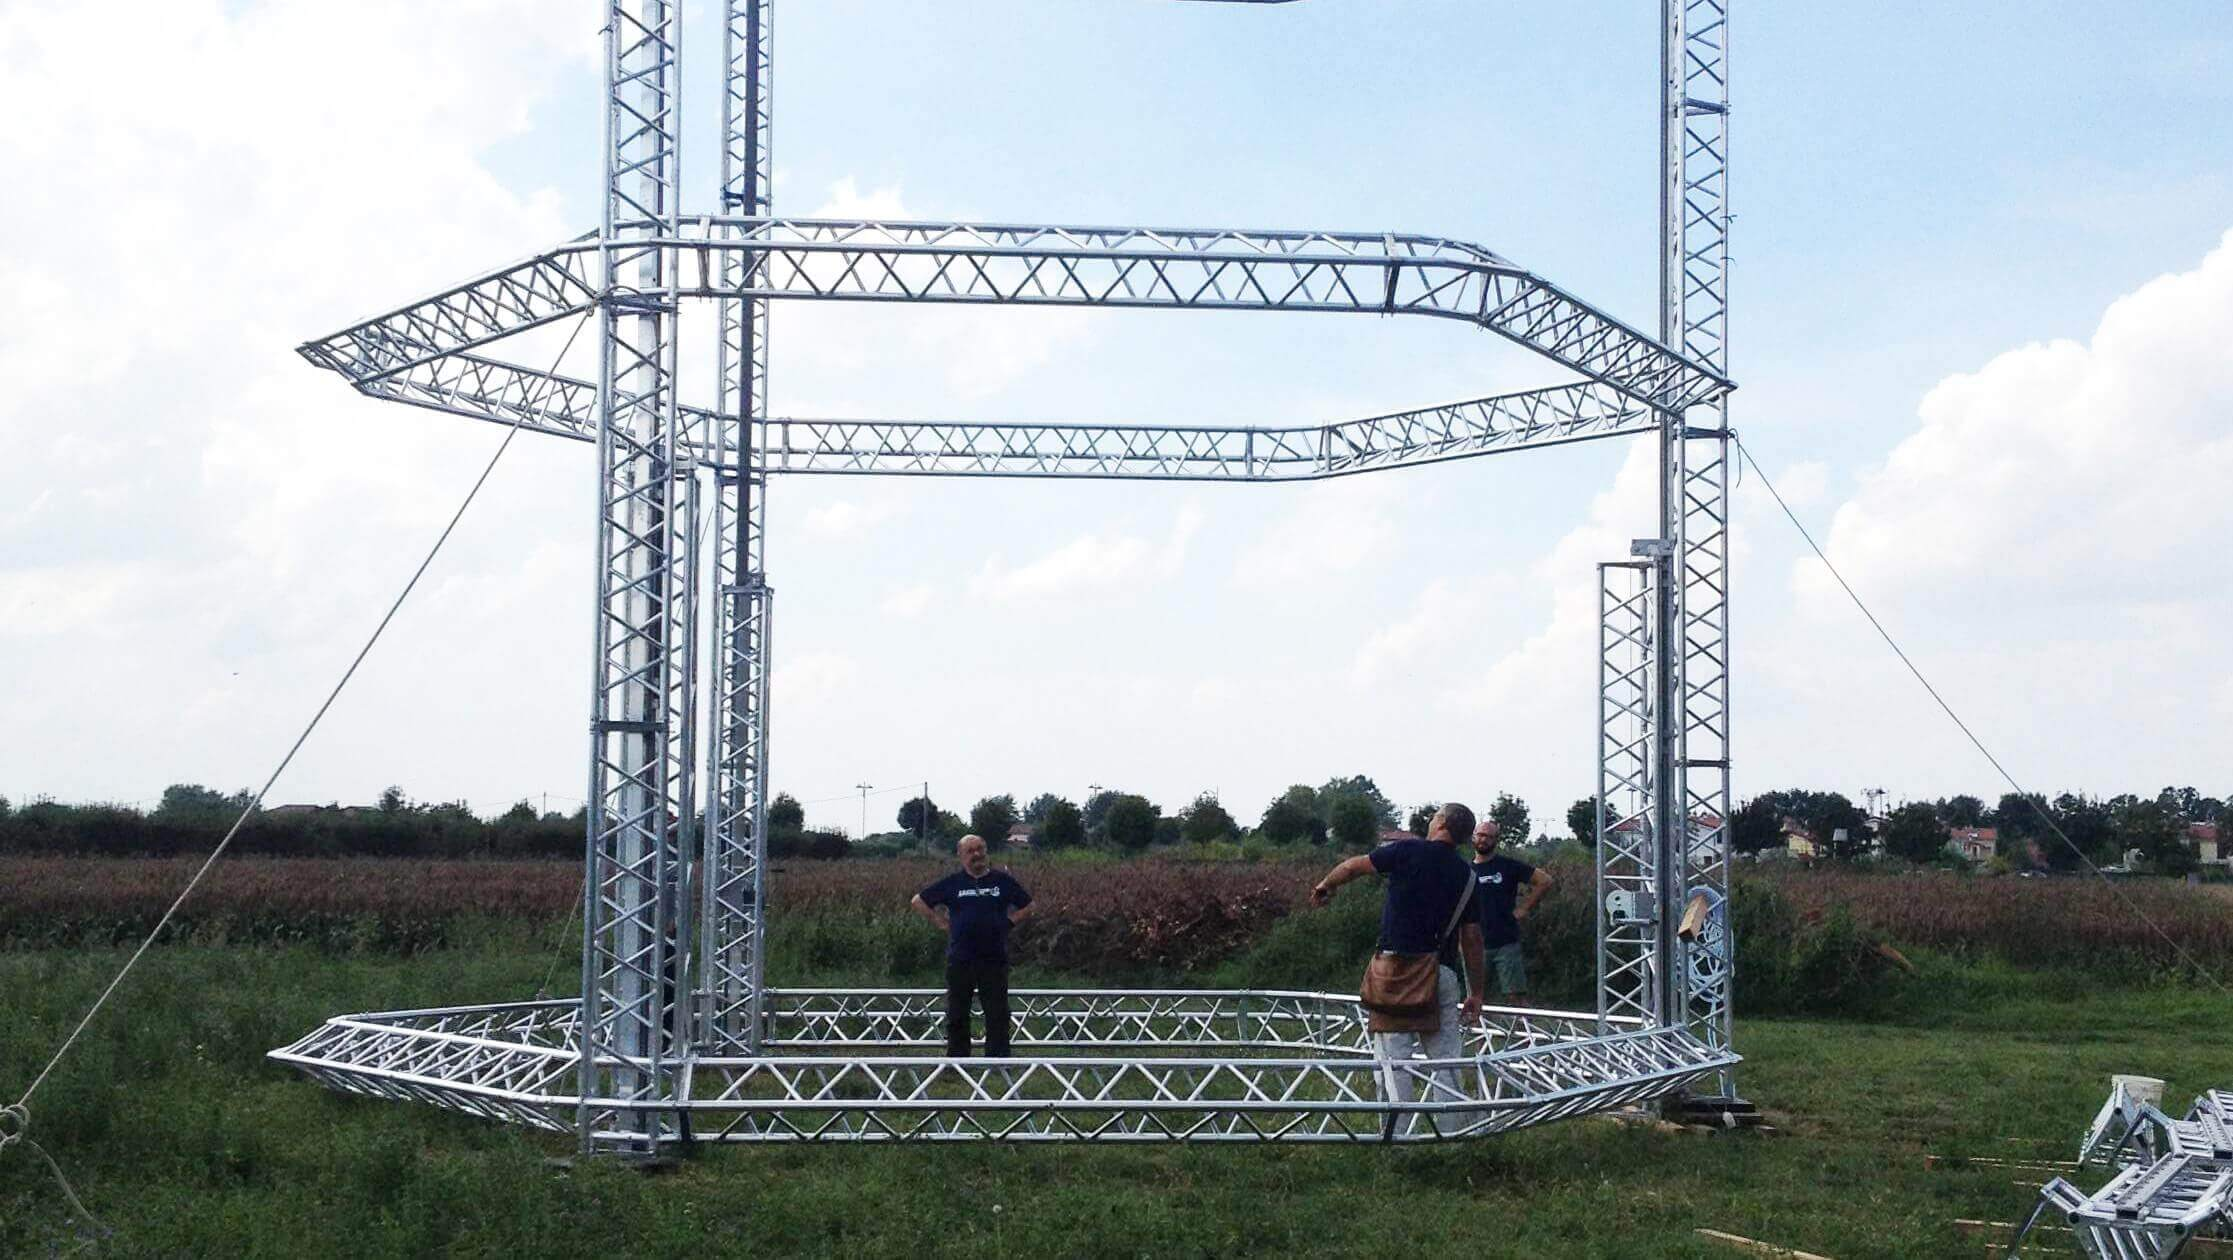 Biggest 3D Delta Printer Ever: 12 Meters High, Prints Houses | All3DP